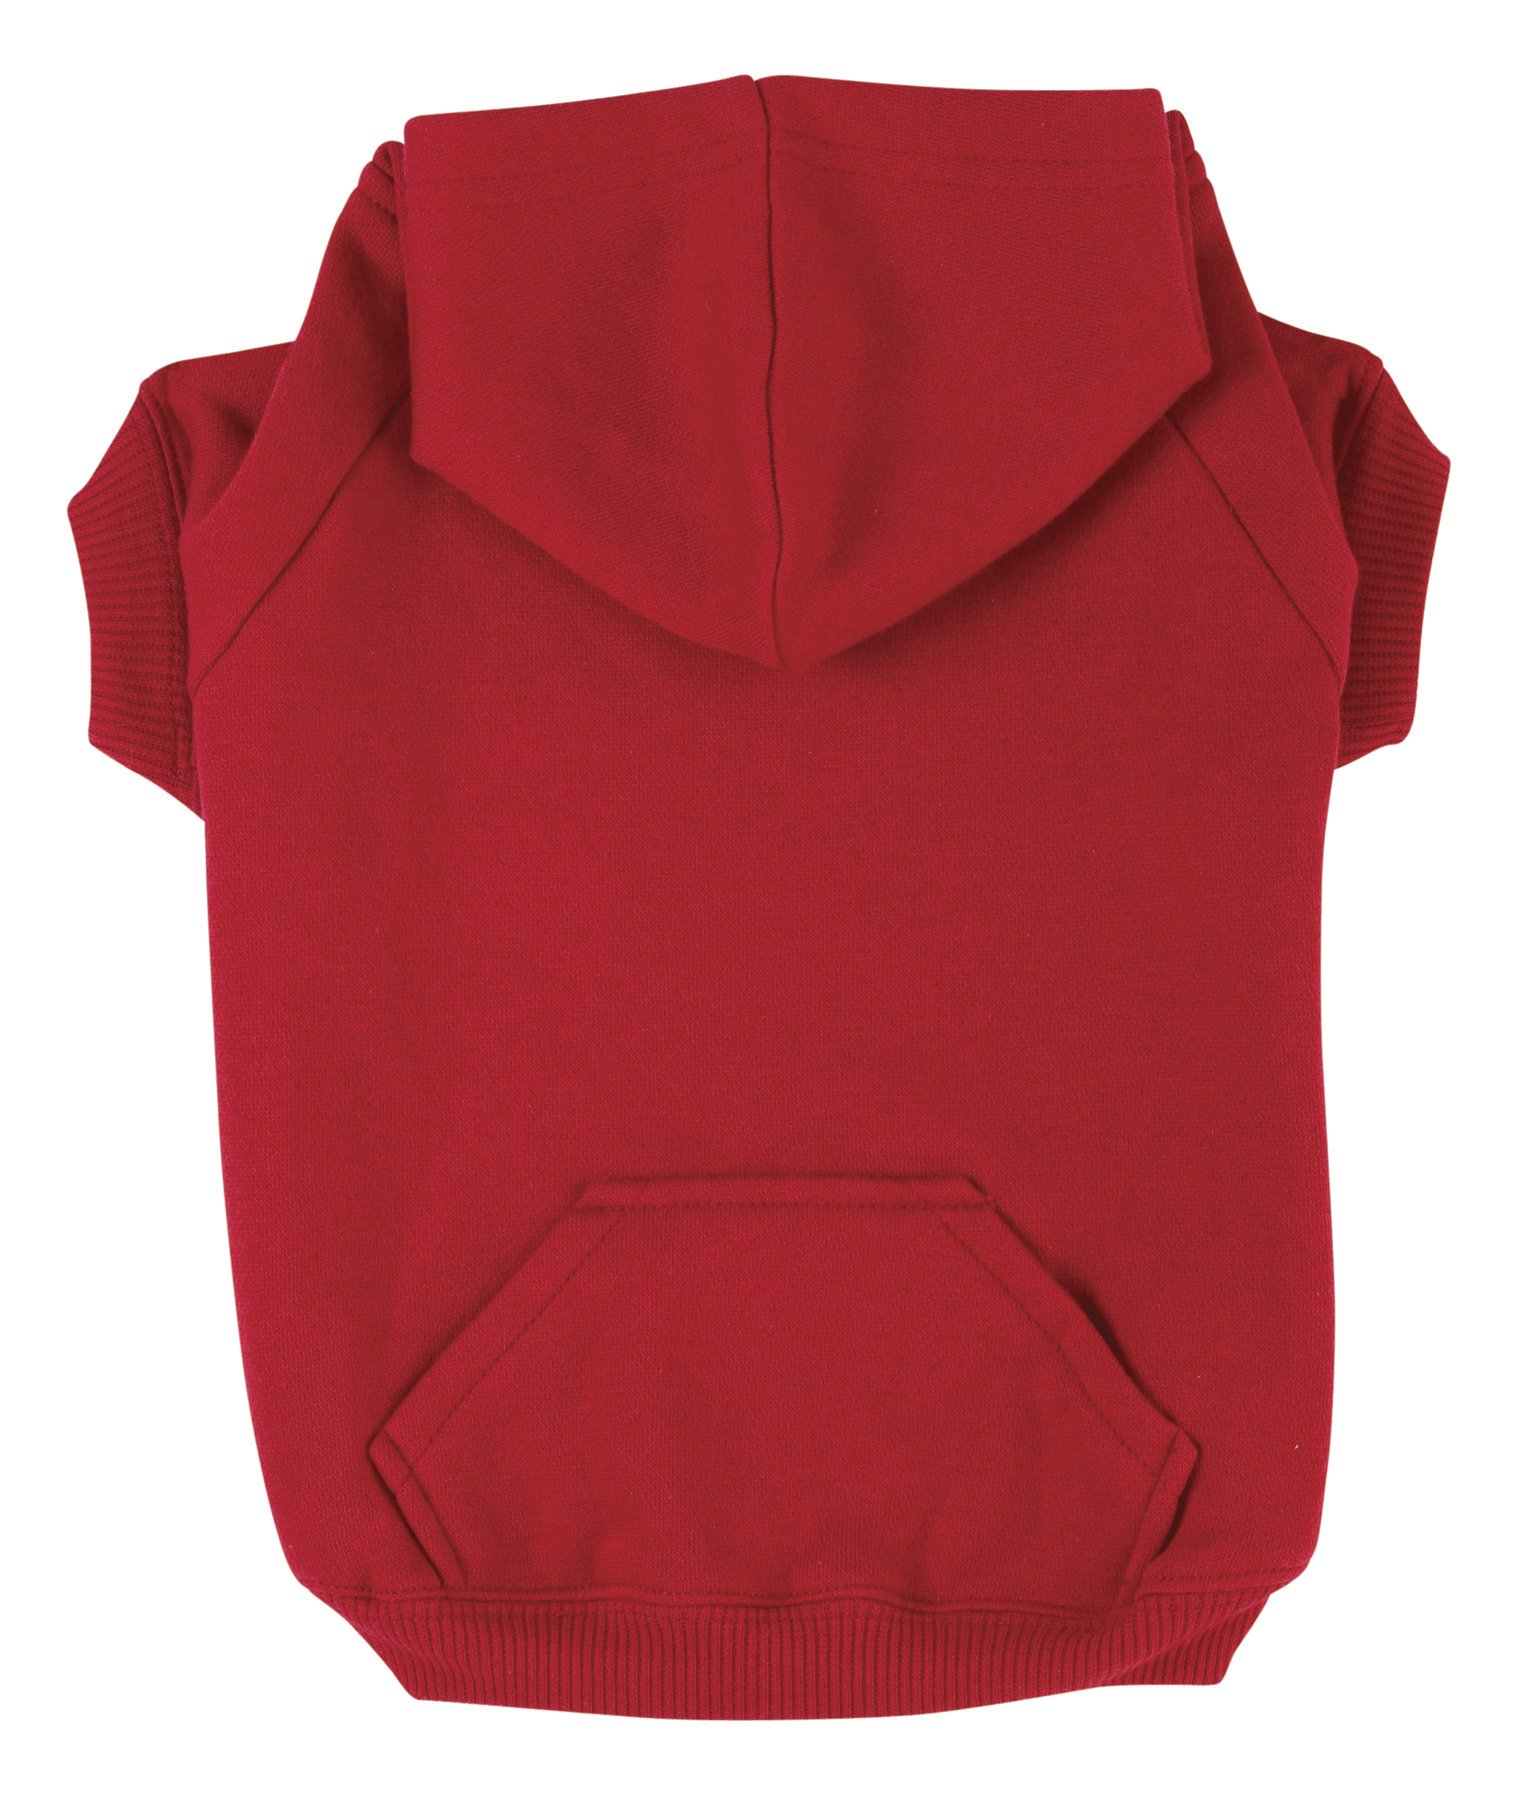 Zack & Zoey Basic Hoodie for Dogs, 16'' Medium, Tomato Red